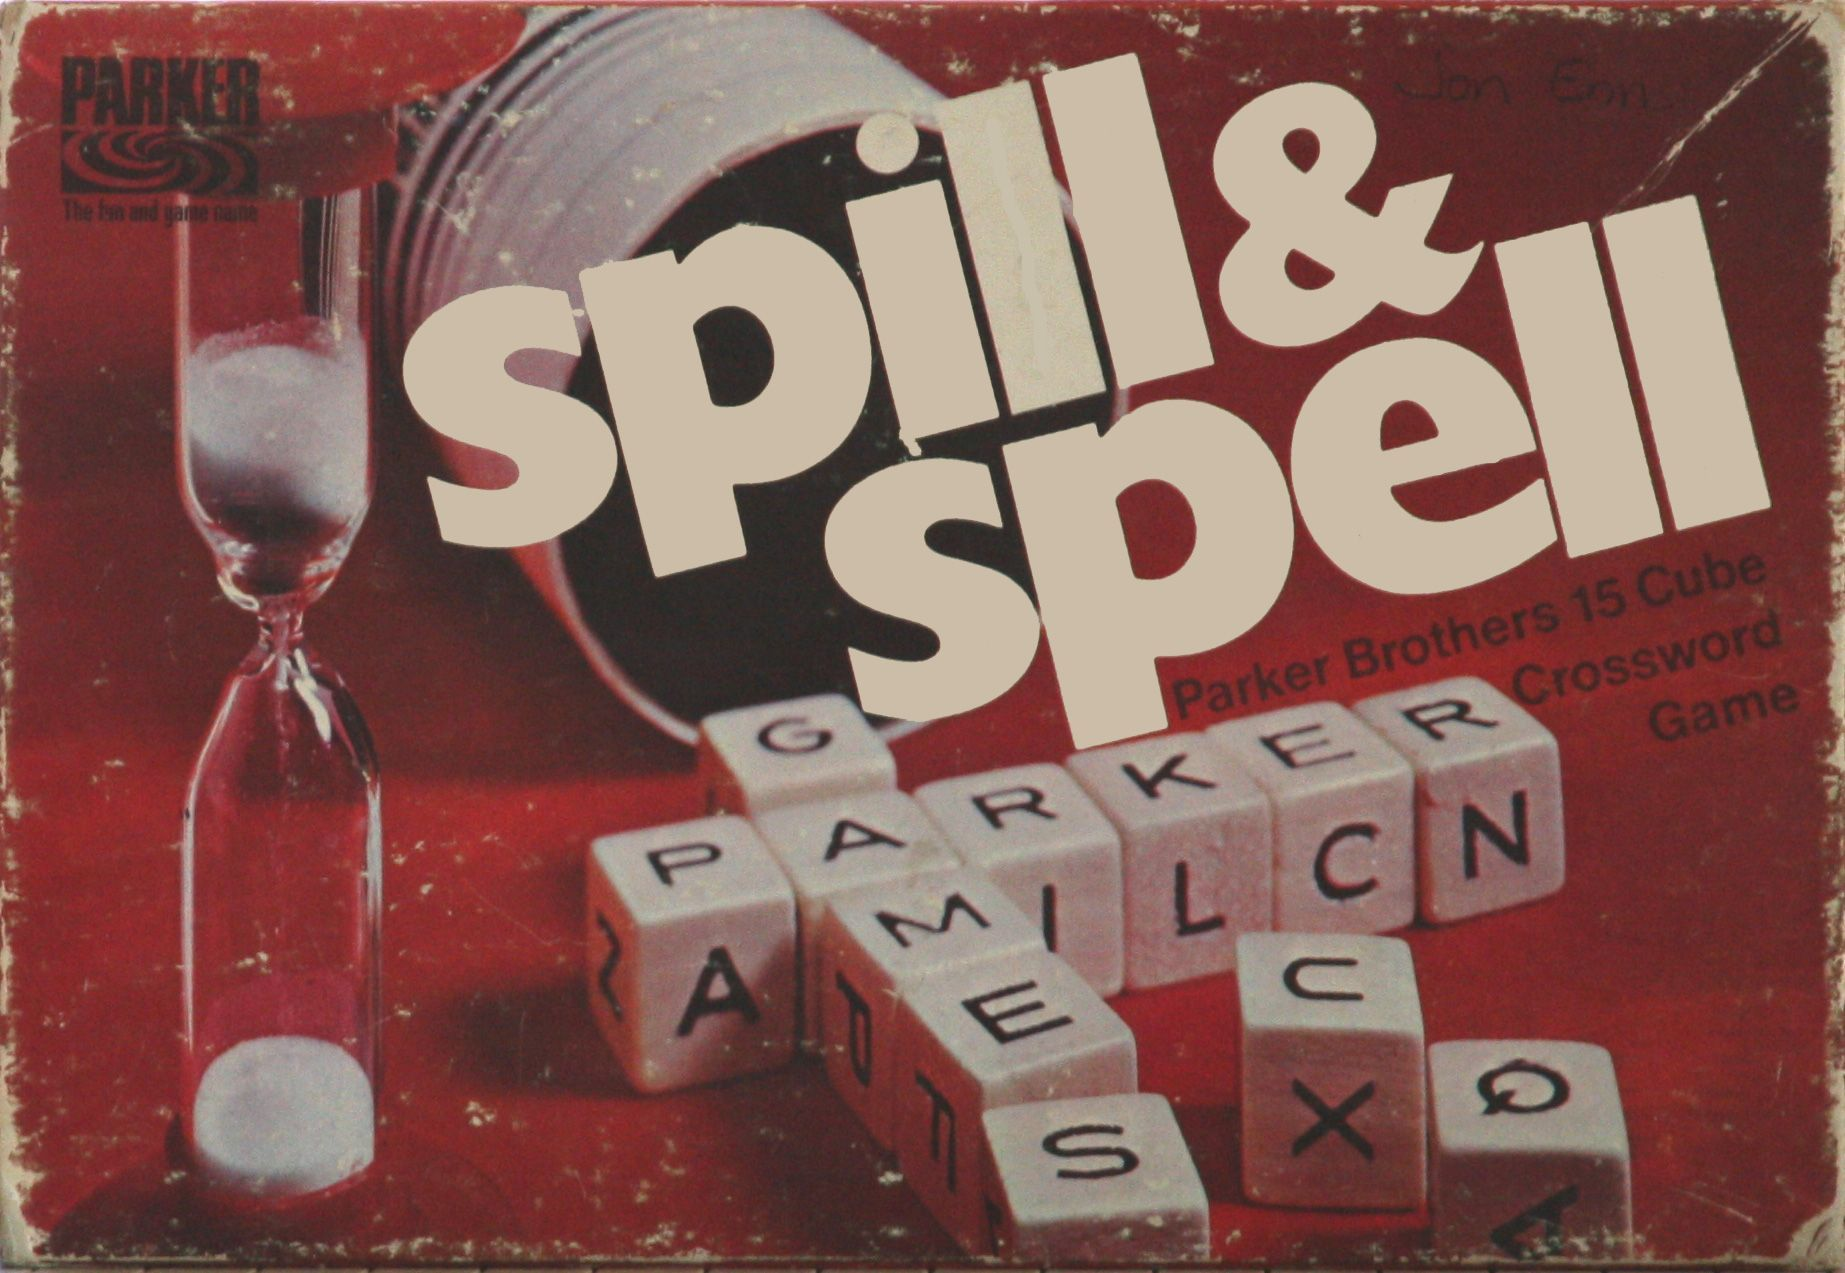 Spill and Spell